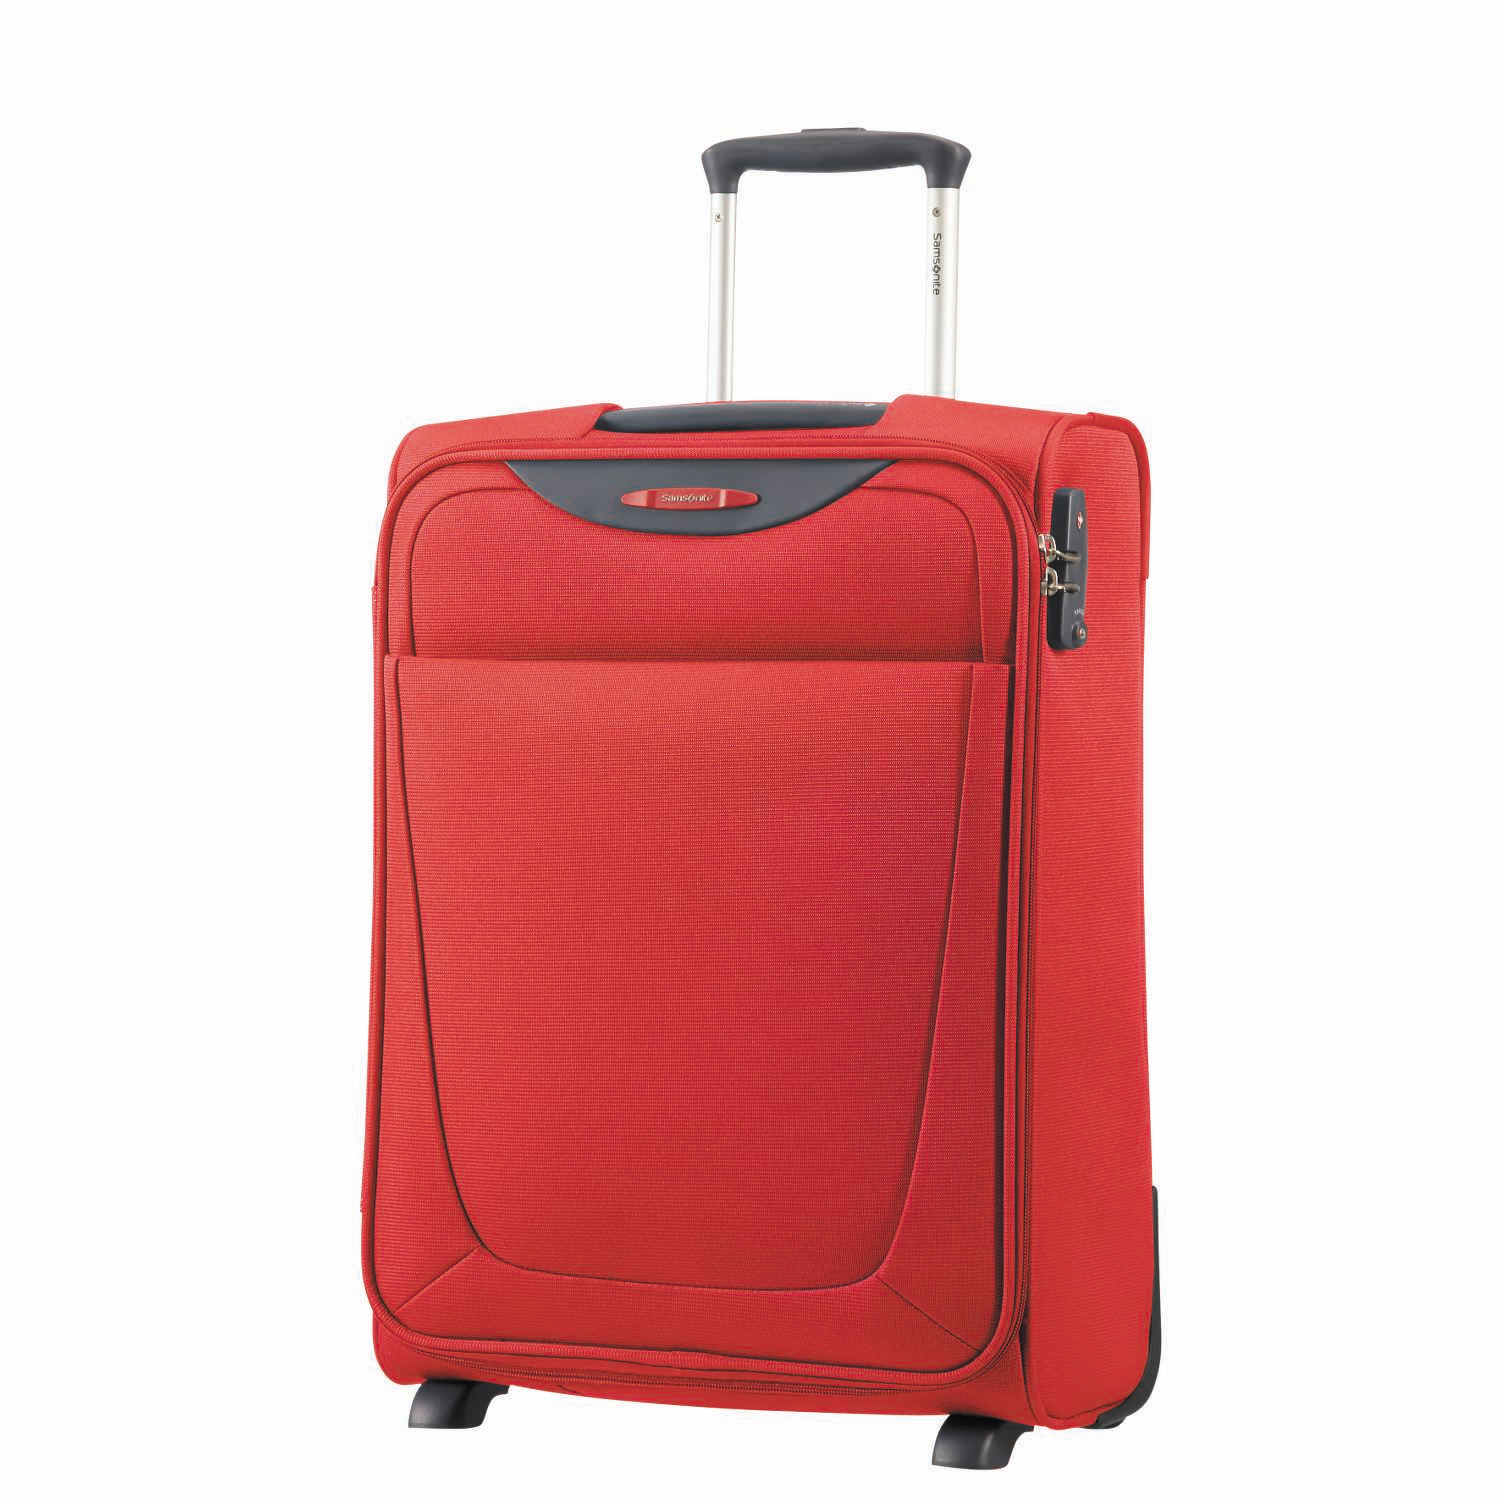 SAMSONITE (TRAVEL) – Βαλίτσα BASEHITS SPINNER 55/20 Samsonite κόκκινη